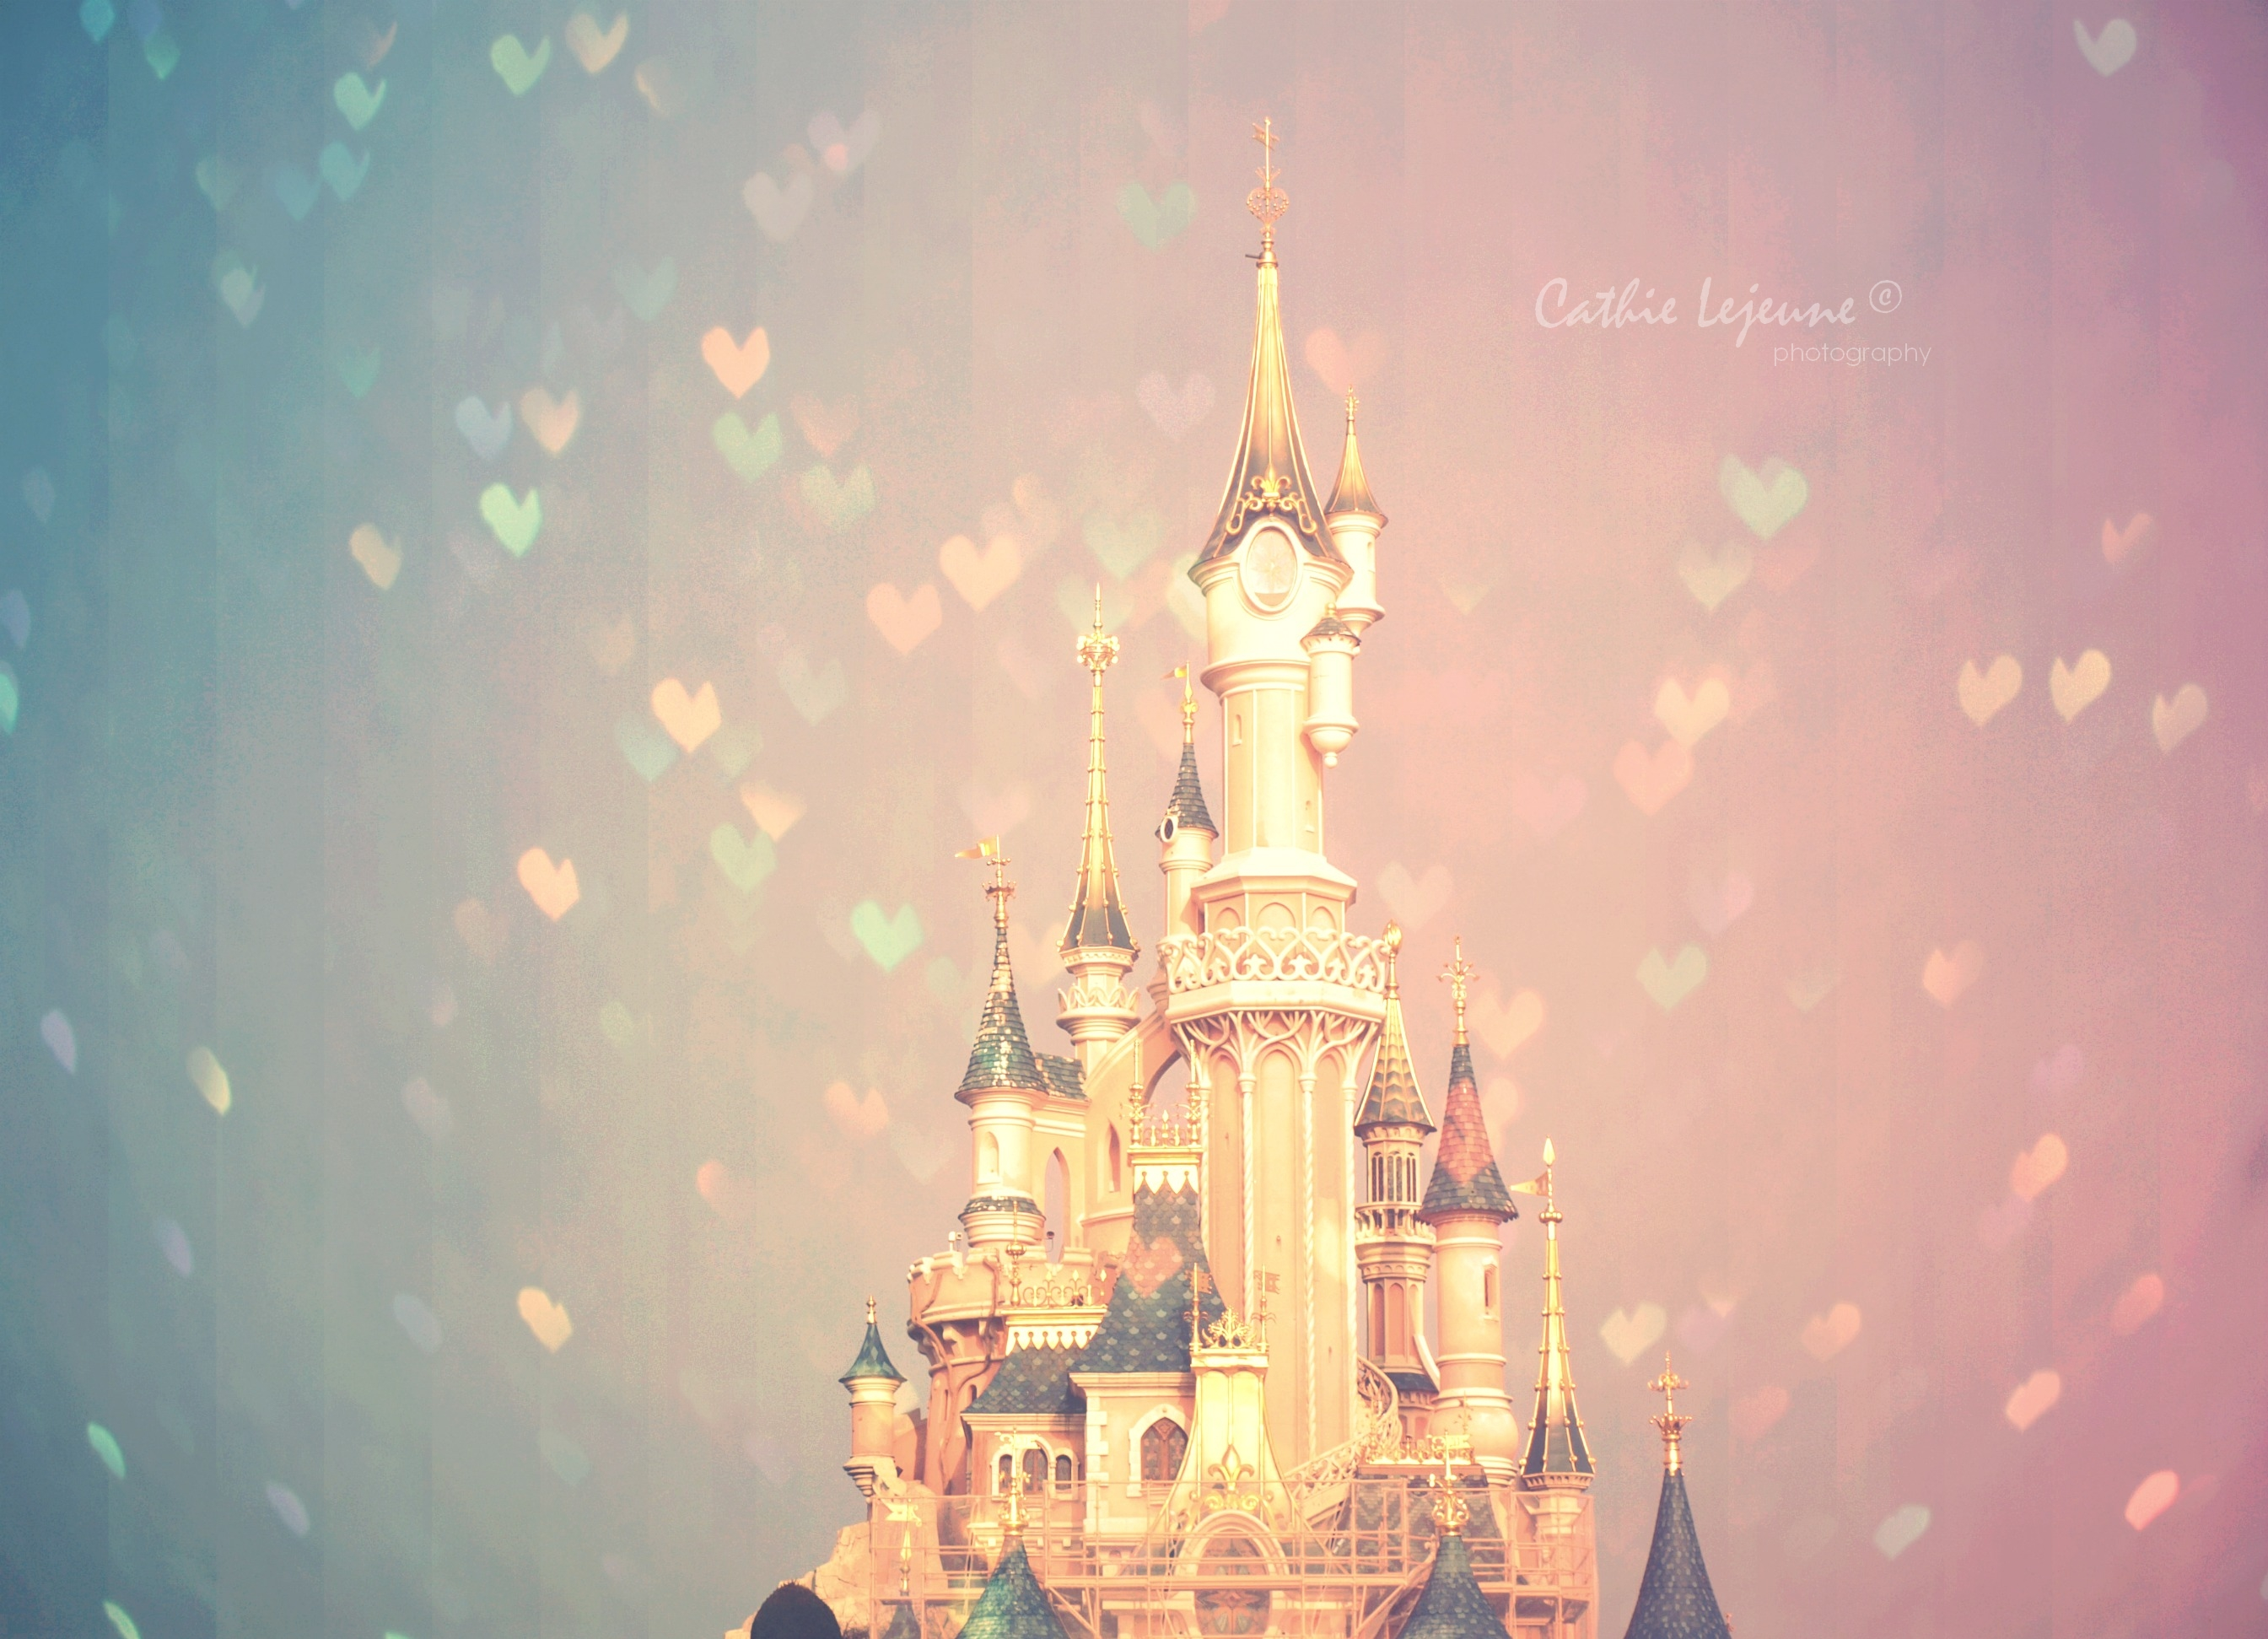 Sleeping Beauty Castle Wallpaper Wallpapersafari